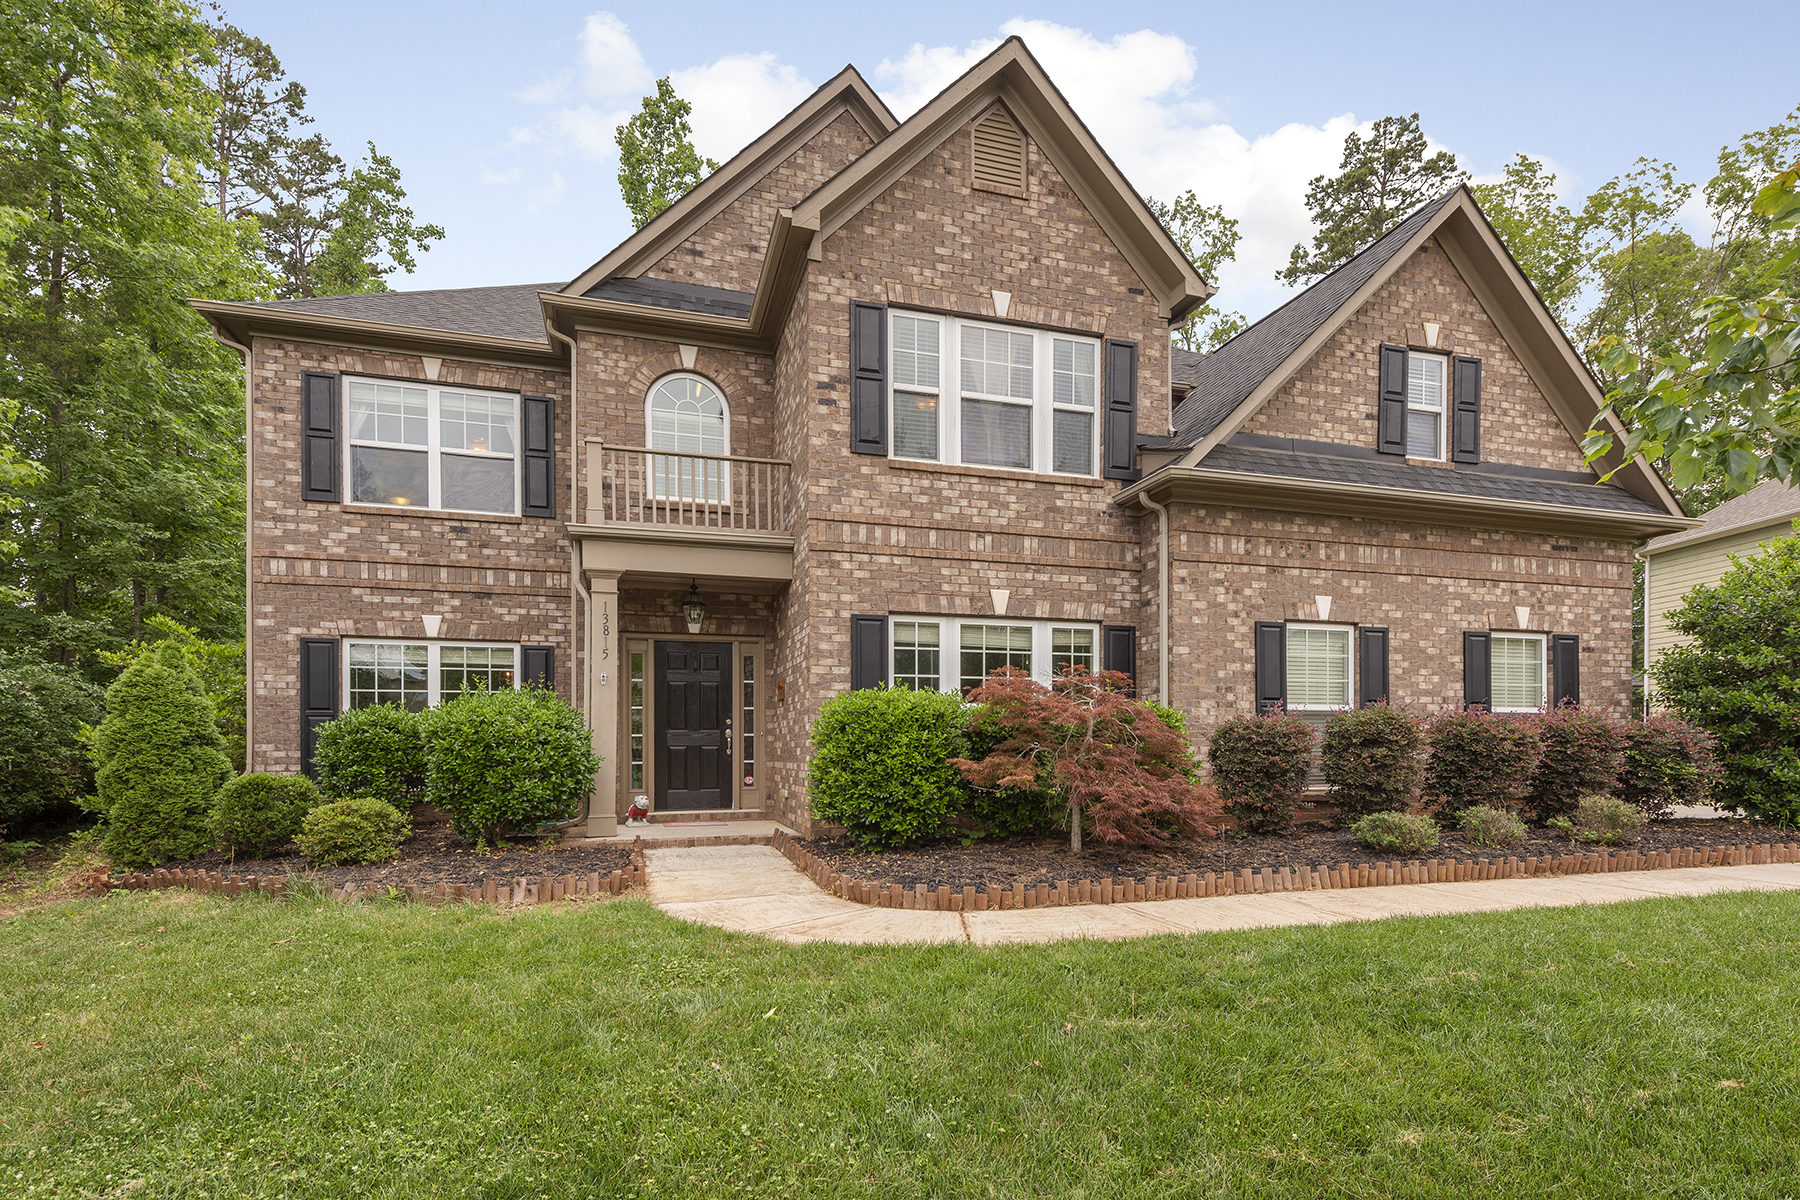 Single Family Homes for Active at MIRABELLA 13815 Lawther Rd Huntersville, North Carolina 28078 United States